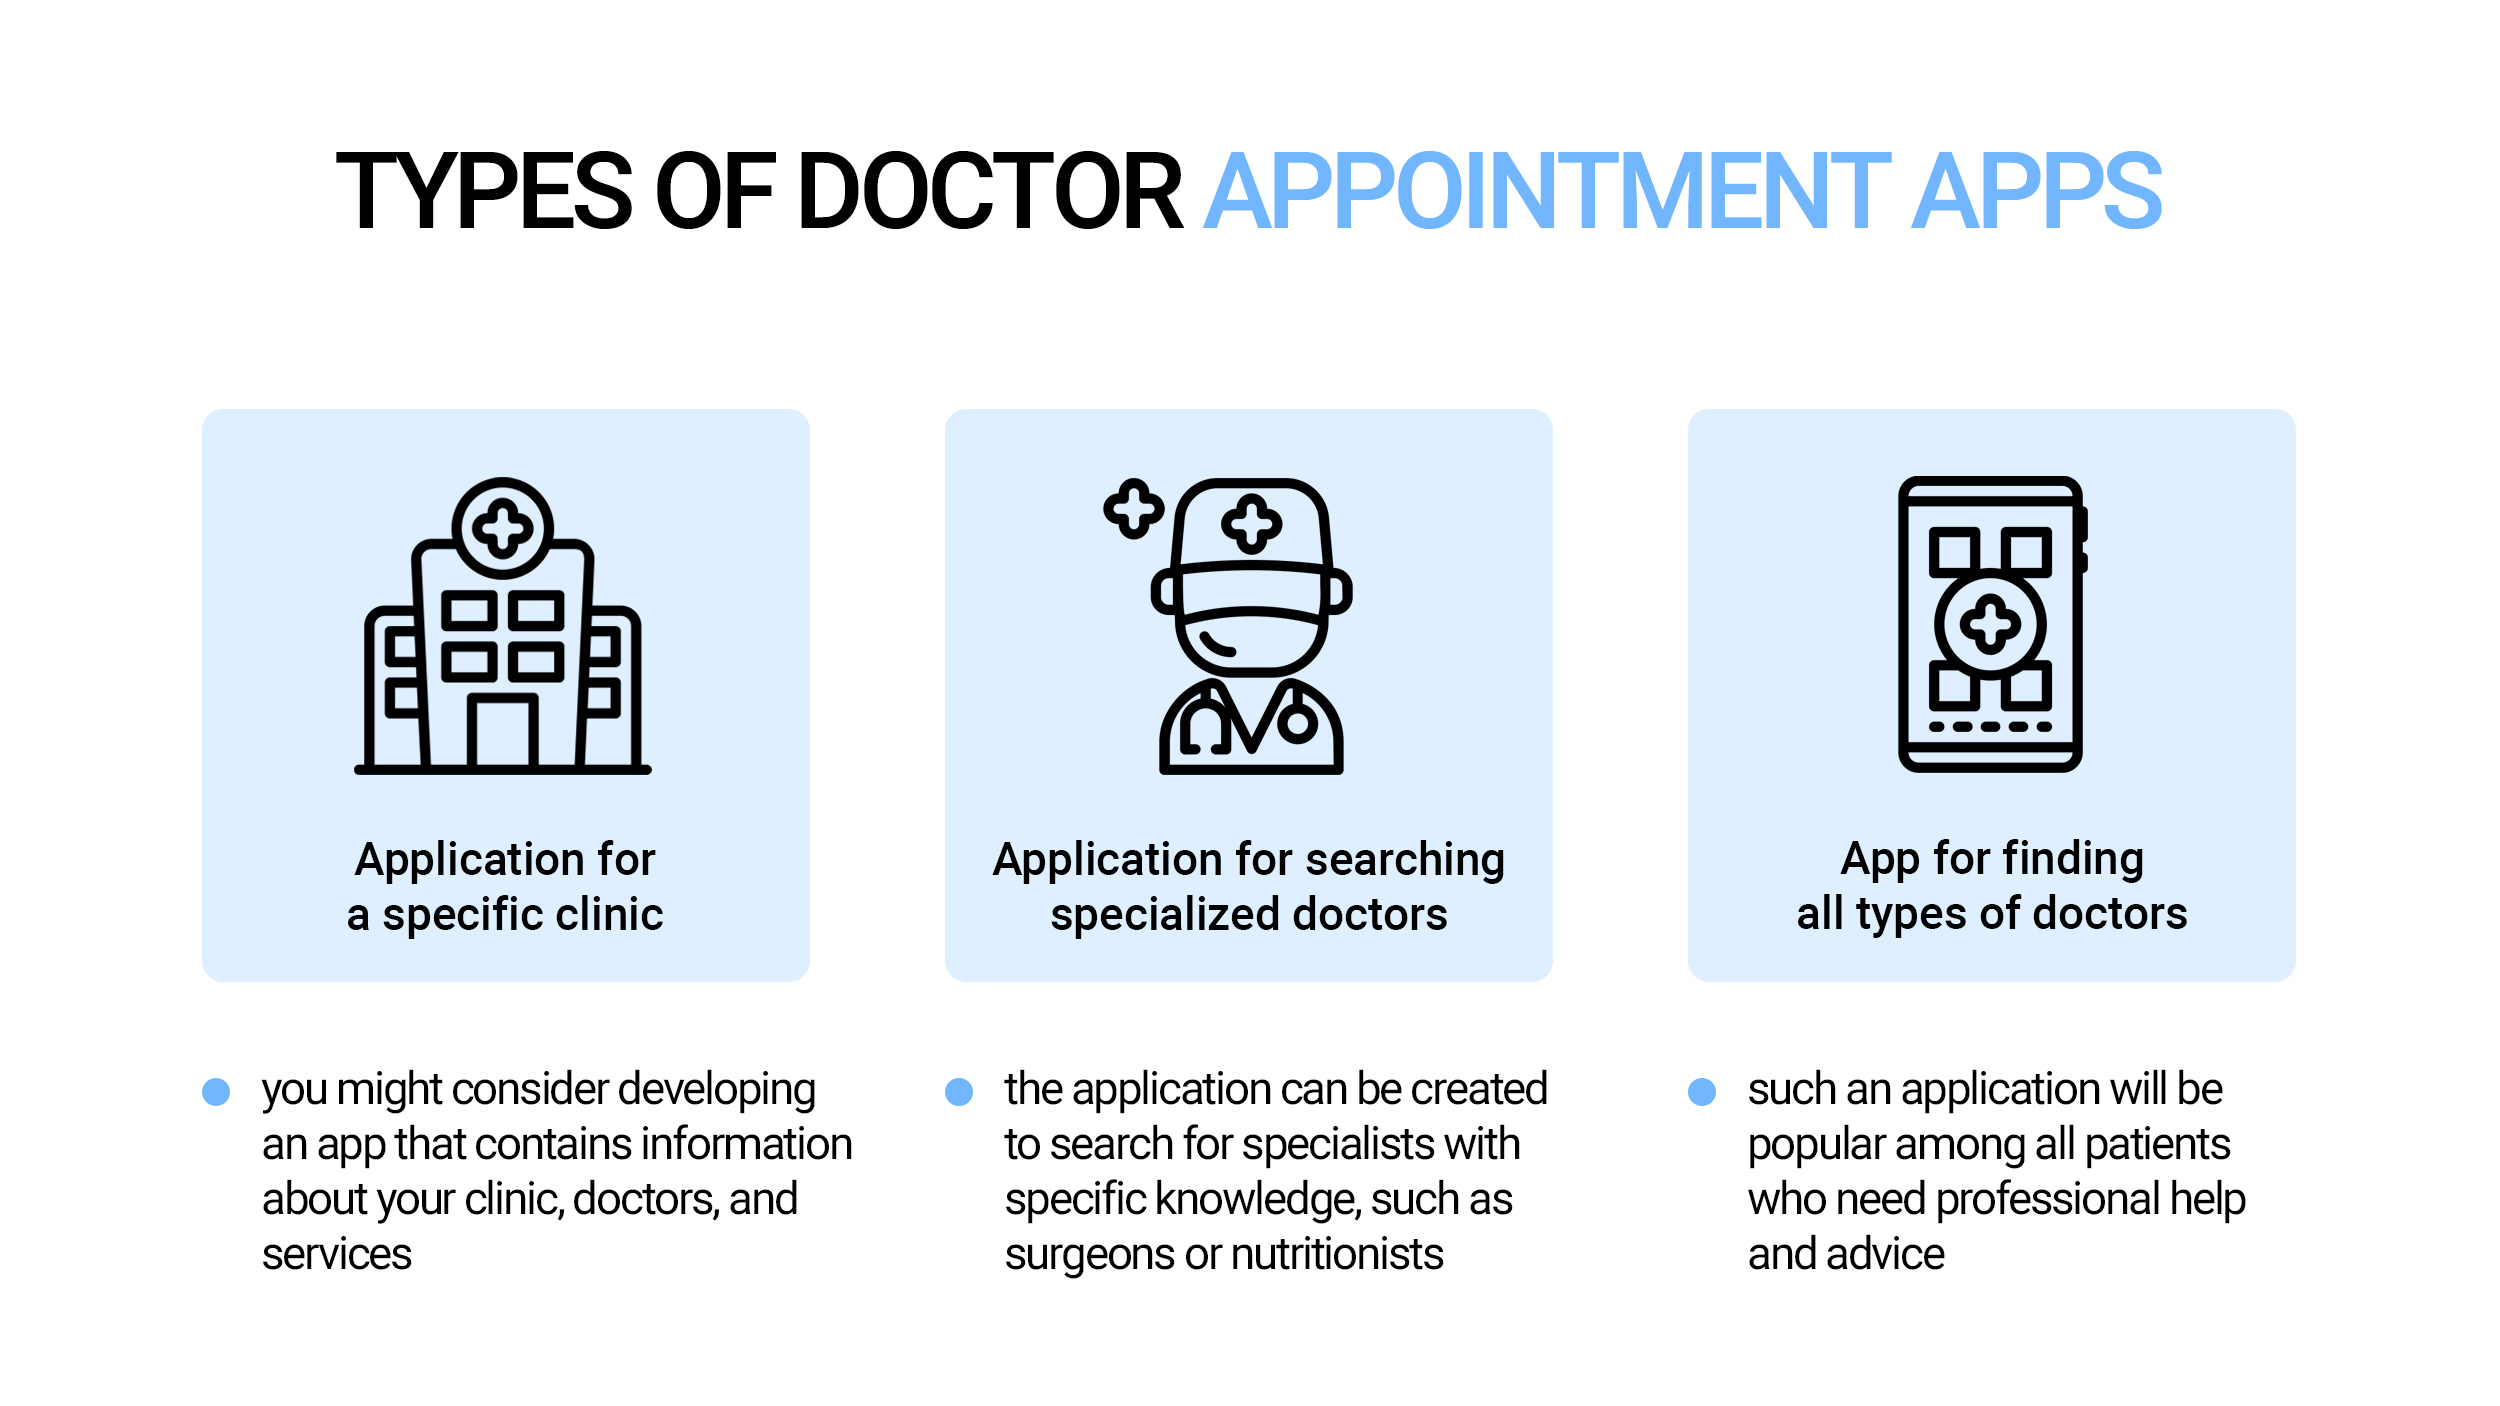 Types of doctor appointment apps